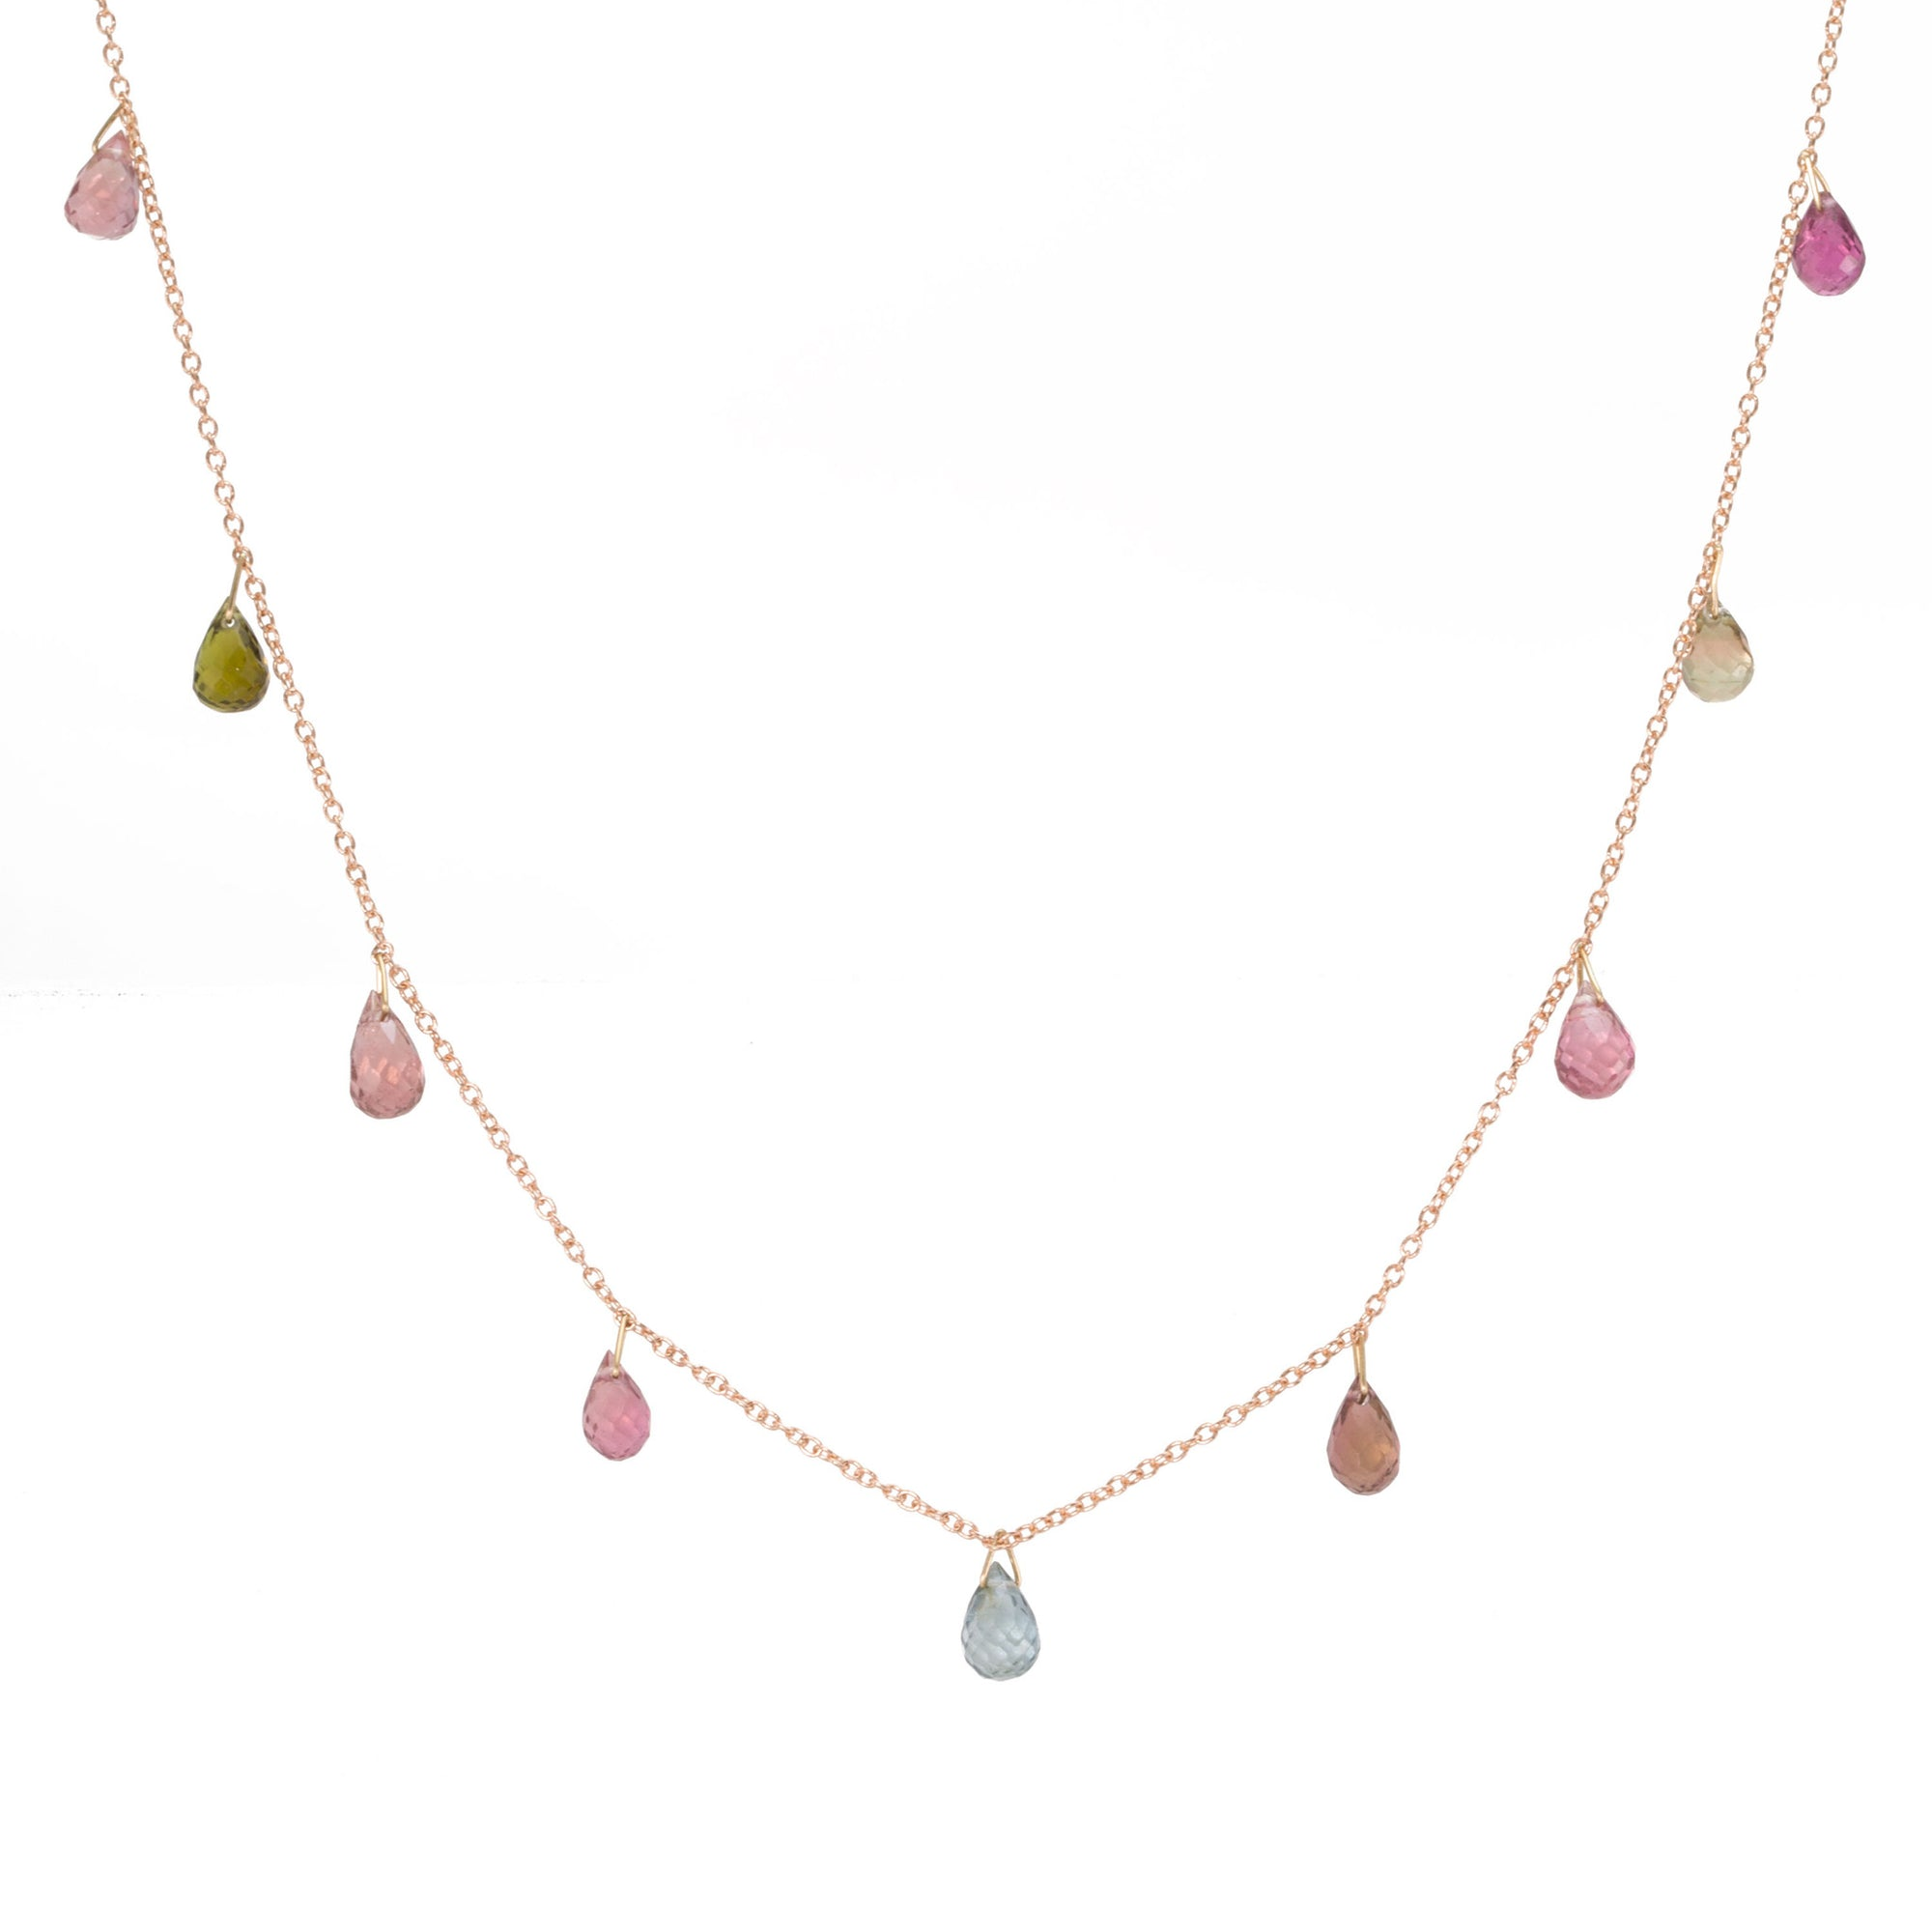 Watermelon Tourmaline Drop Necklace